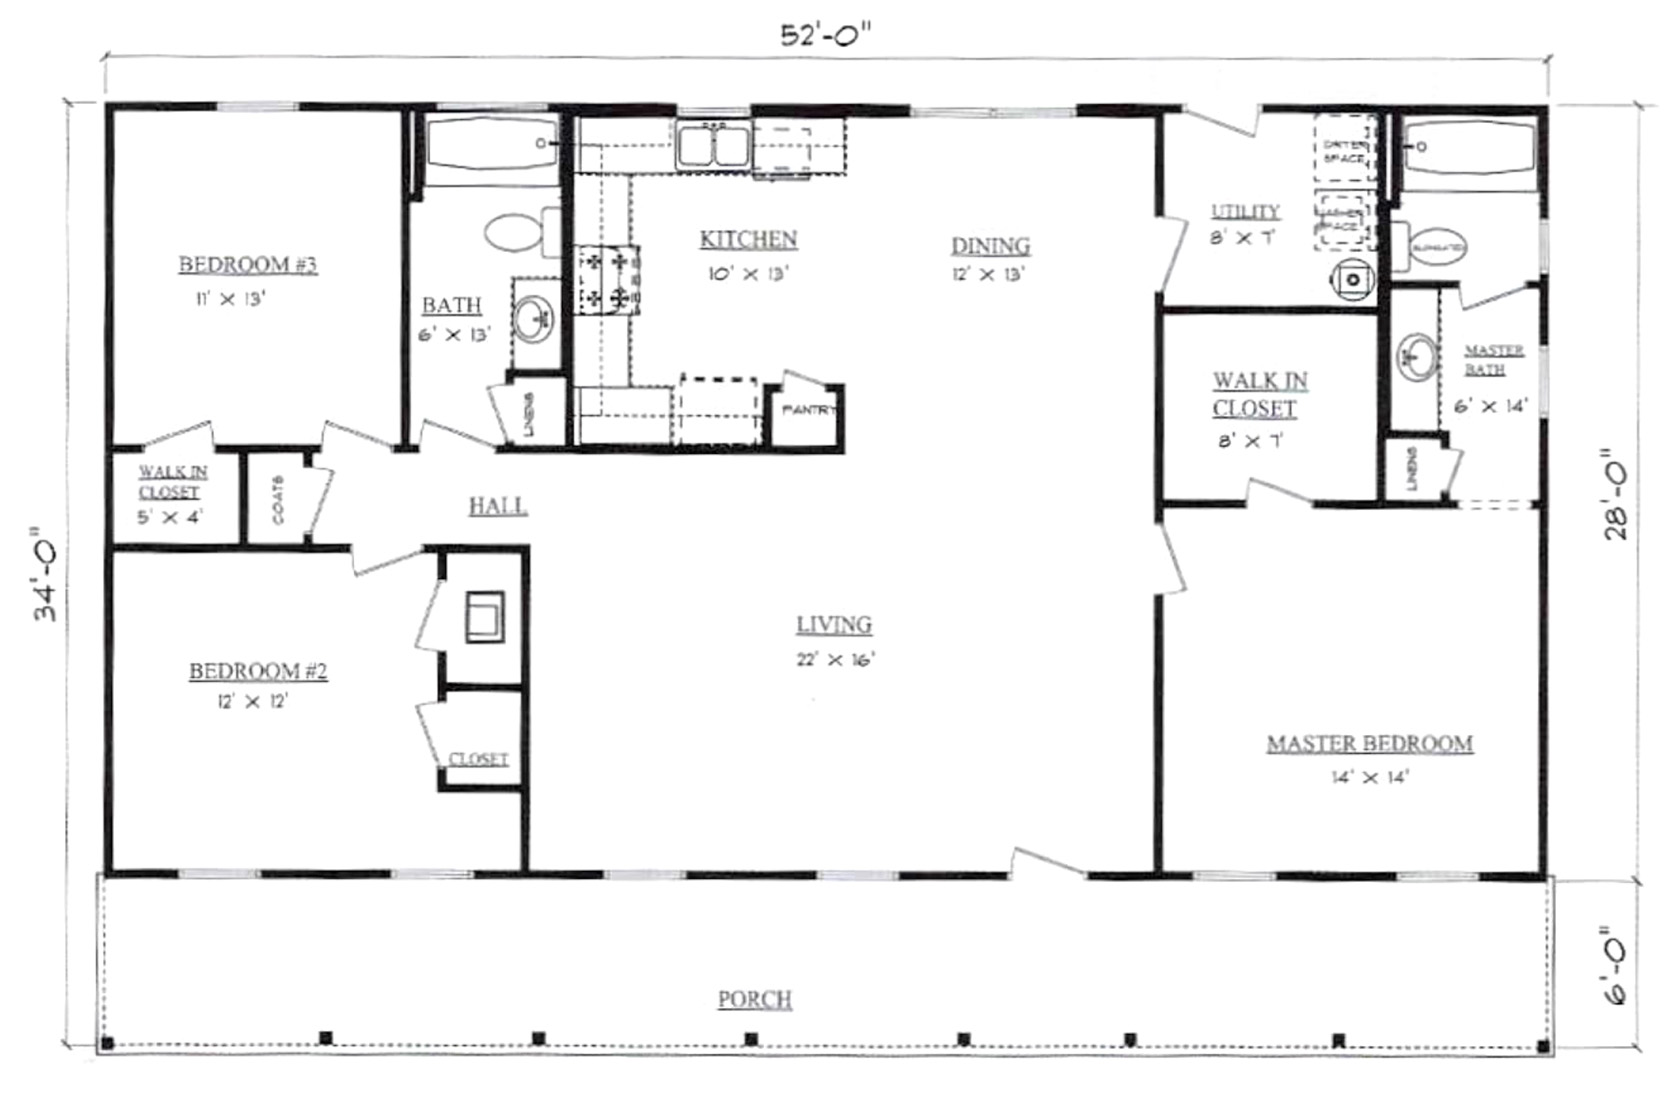 Plans for Farmhouse Pennyworth Homes Tallahassee Home Builder